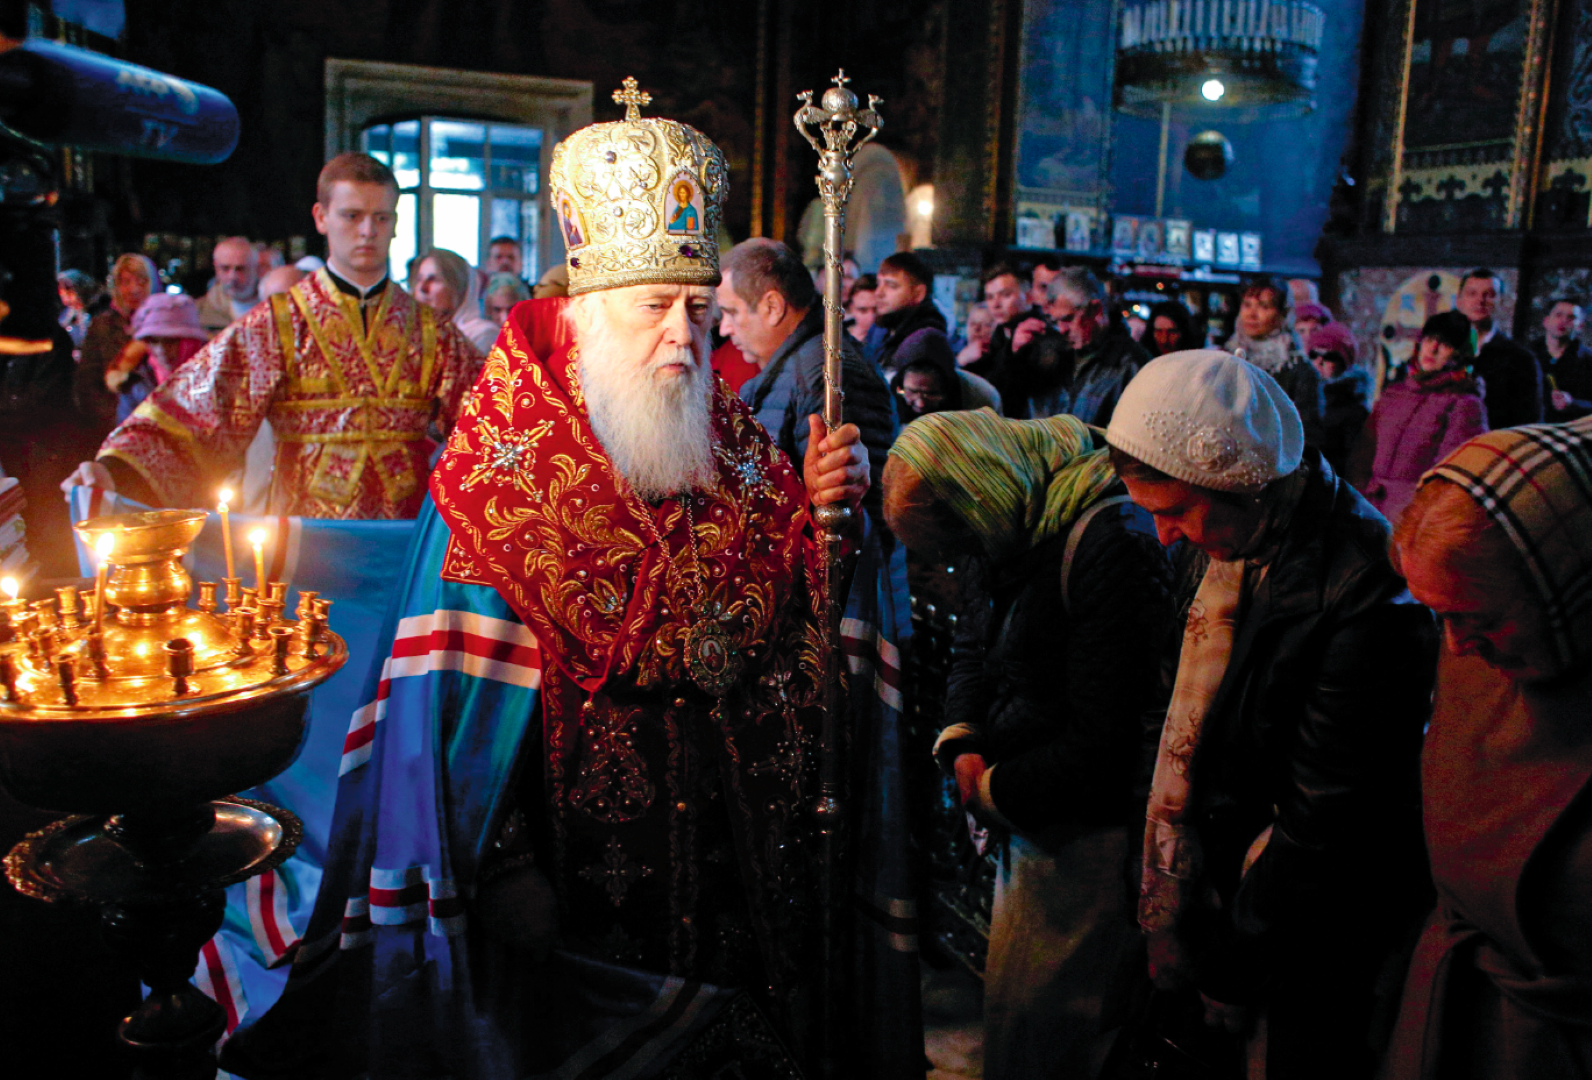 Where next for Ukraine's new Orthodox Church?